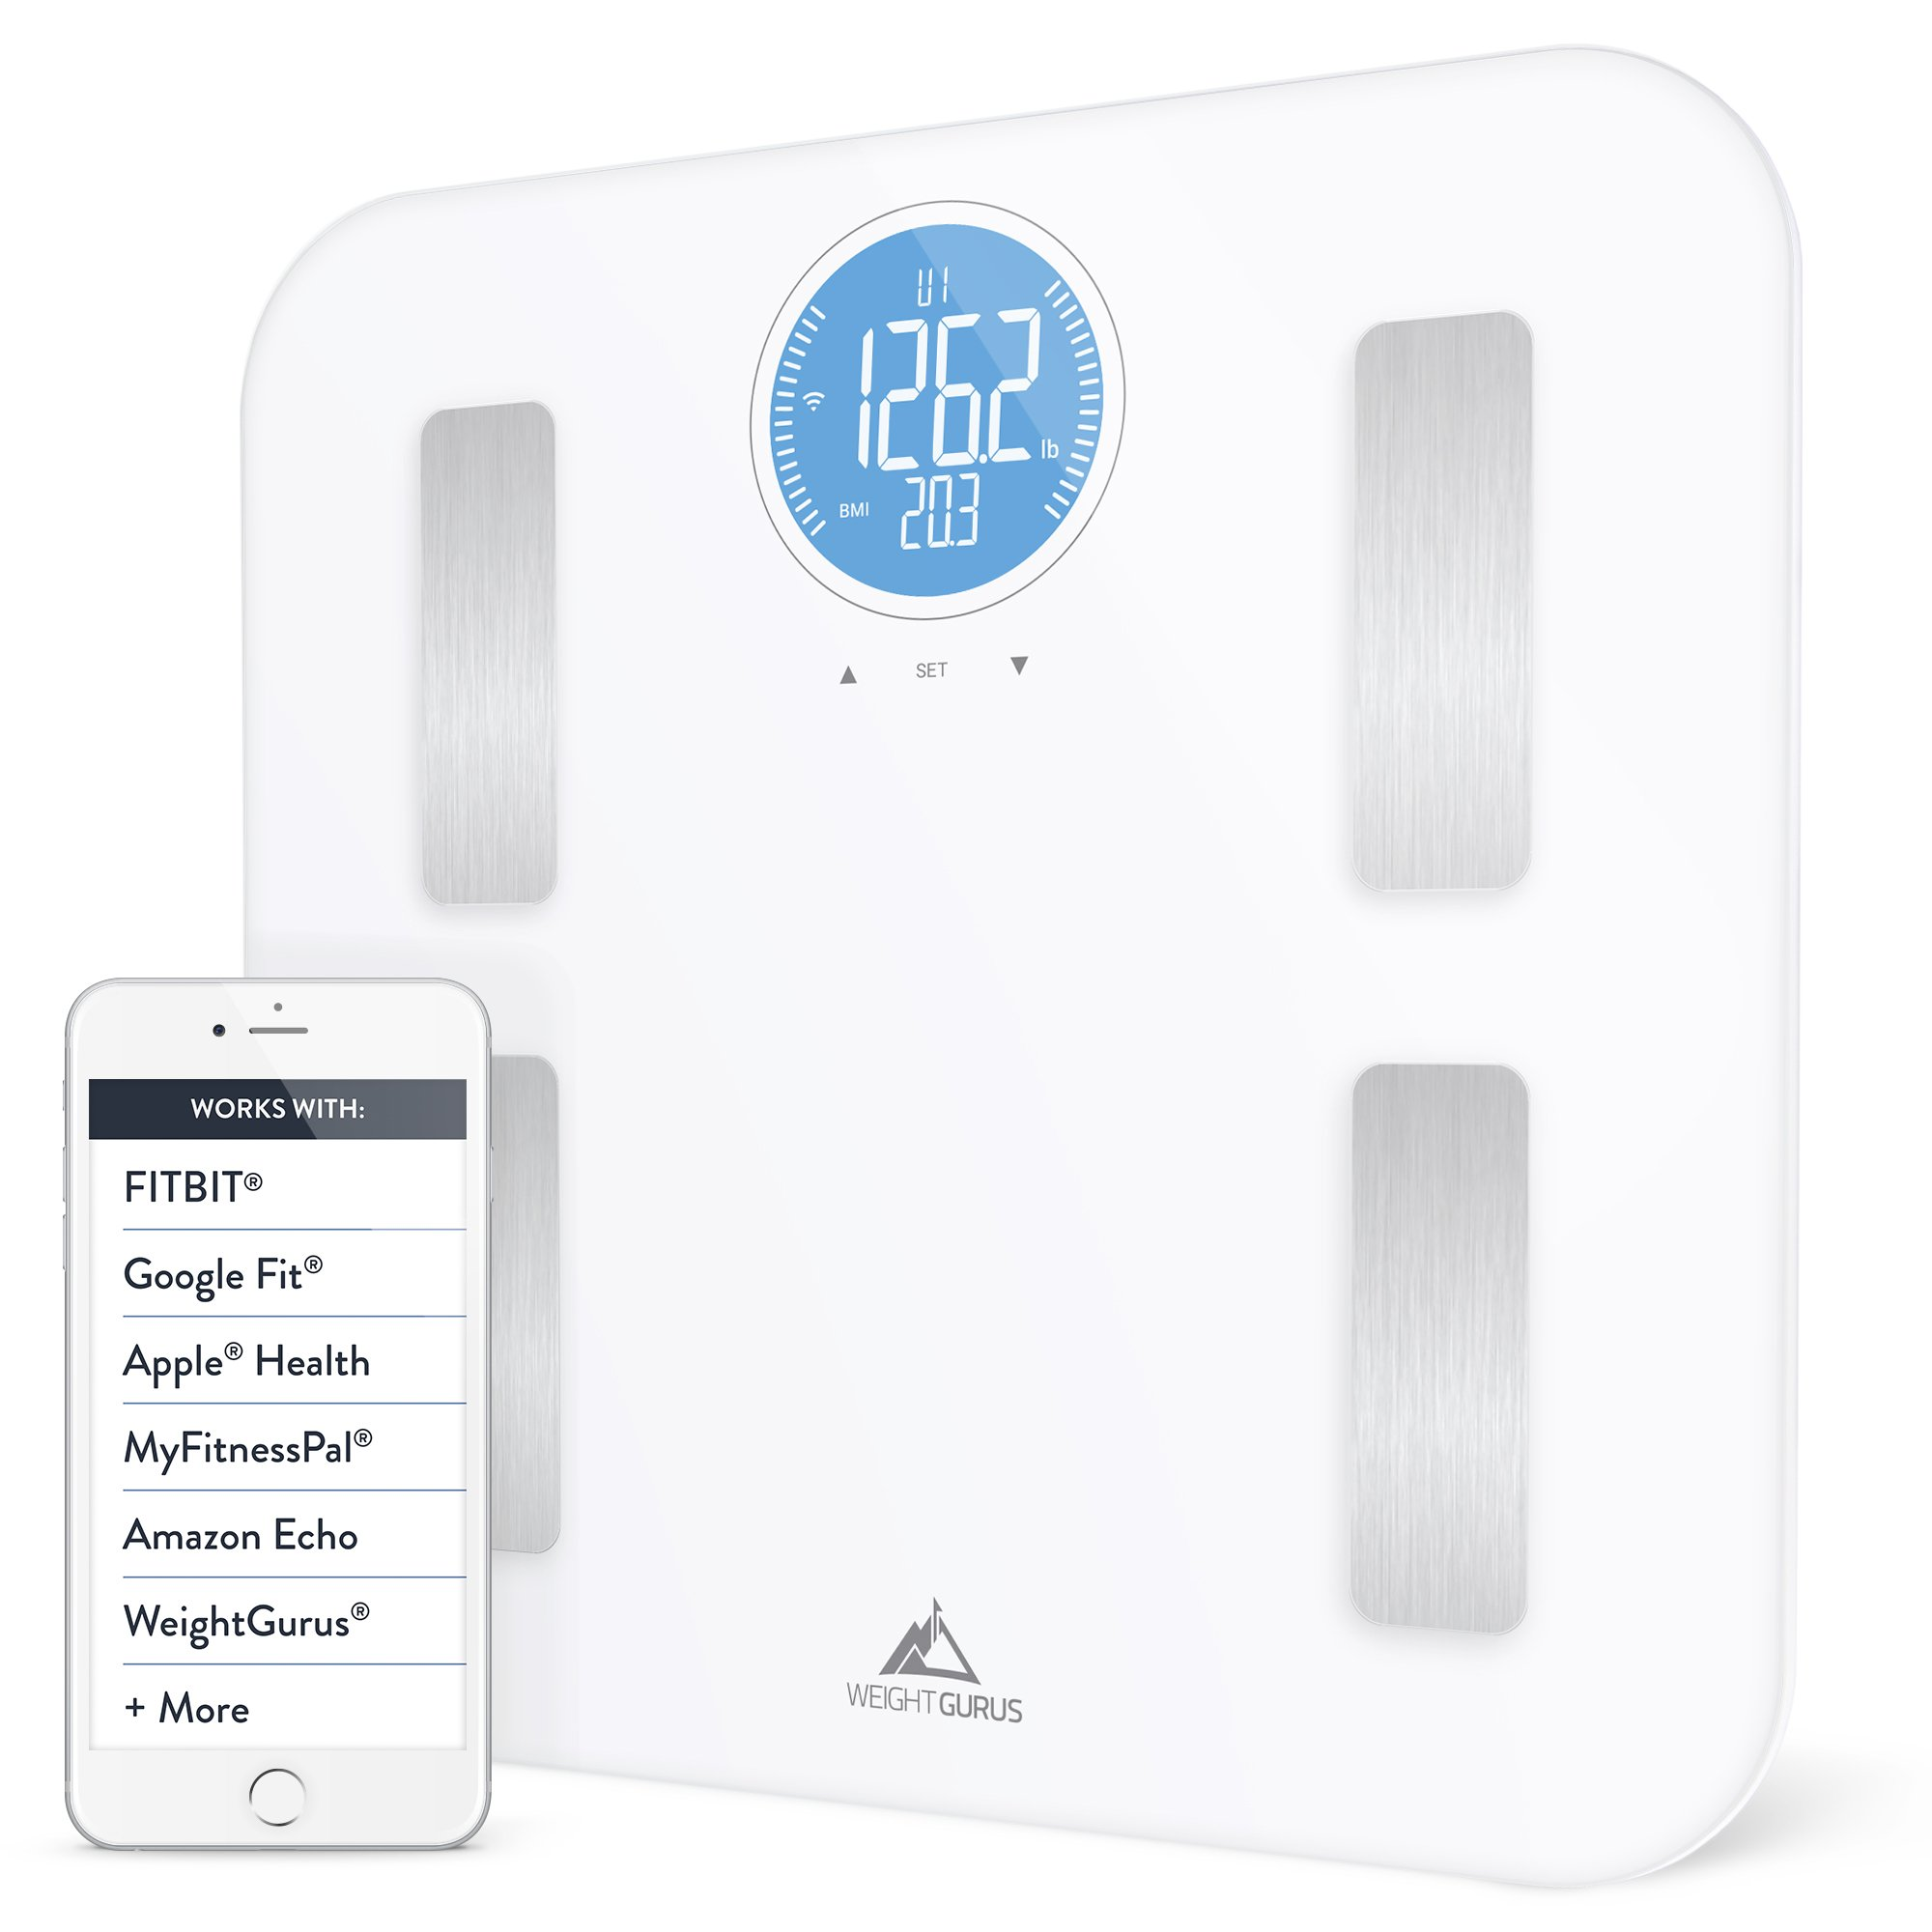 Weight Gurus WiFi Smart Connected Body Fat Scale with Large Backlit LCD (White + Stainless) (Off-White) by Greater Goods (Image #1)